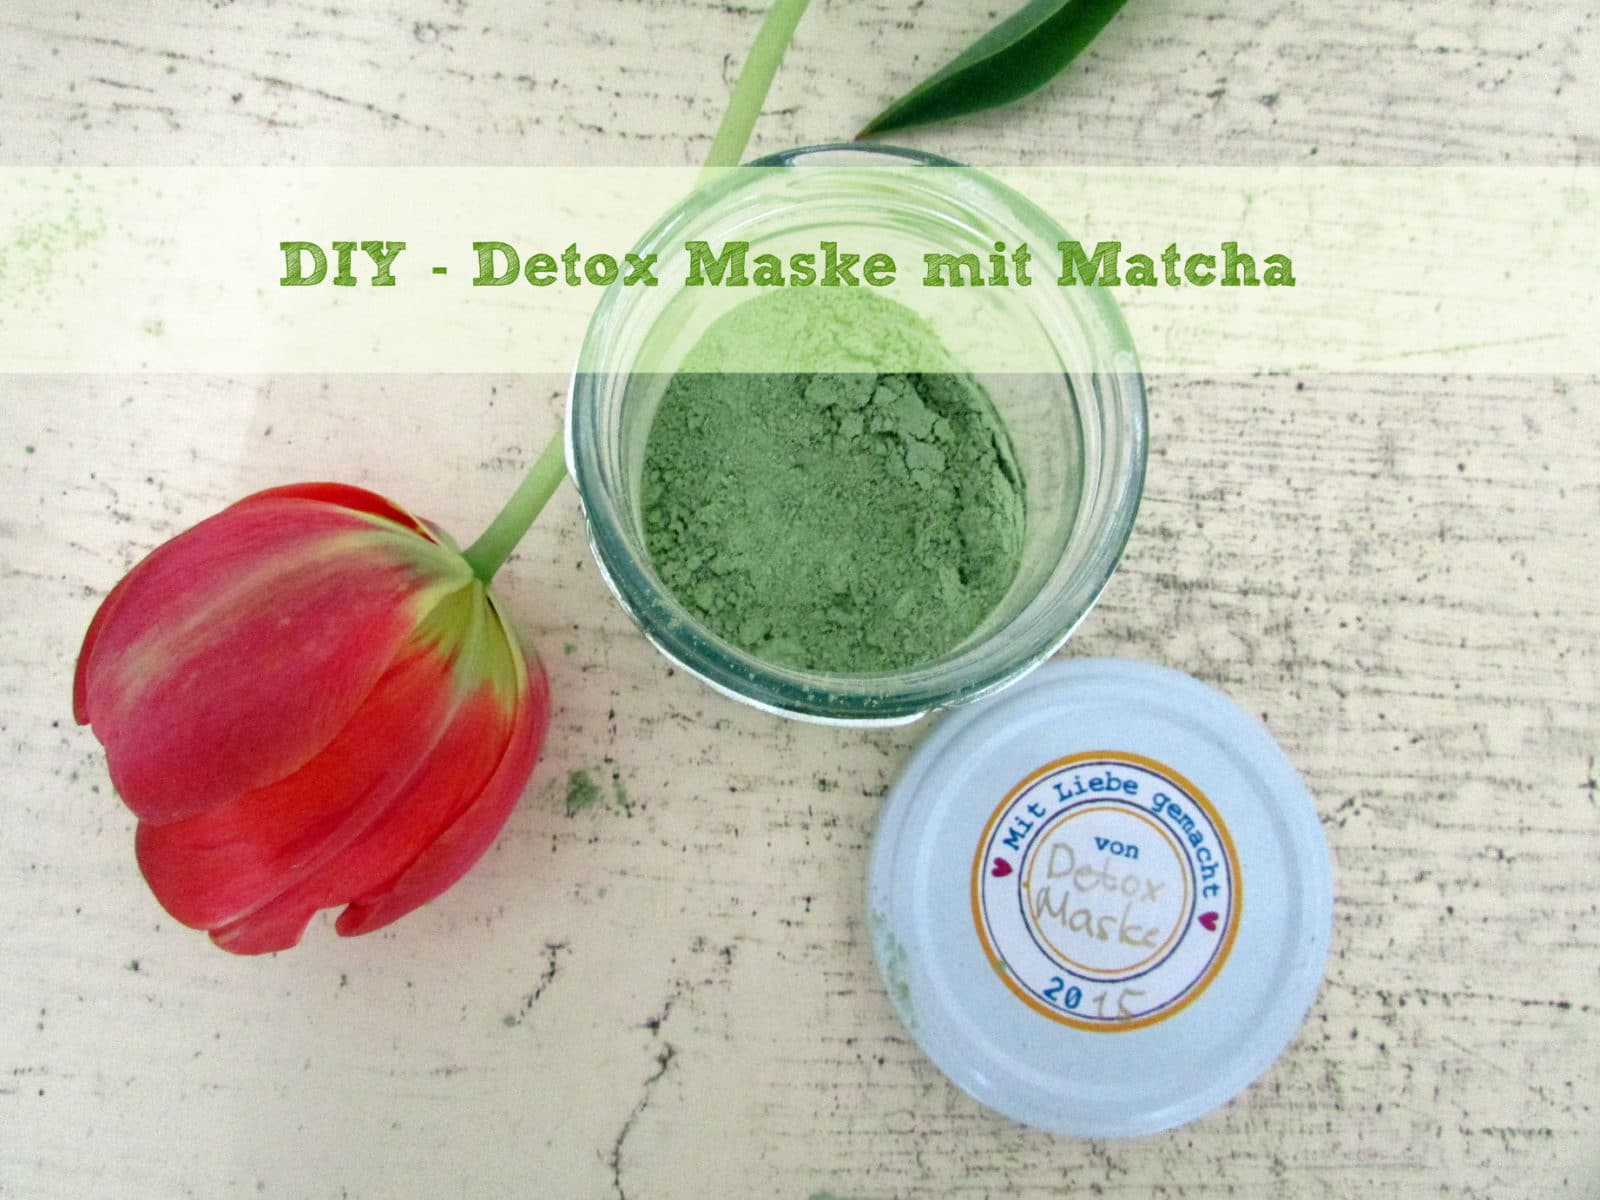 detox maske mit matcha handmade kultur. Black Bedroom Furniture Sets. Home Design Ideas